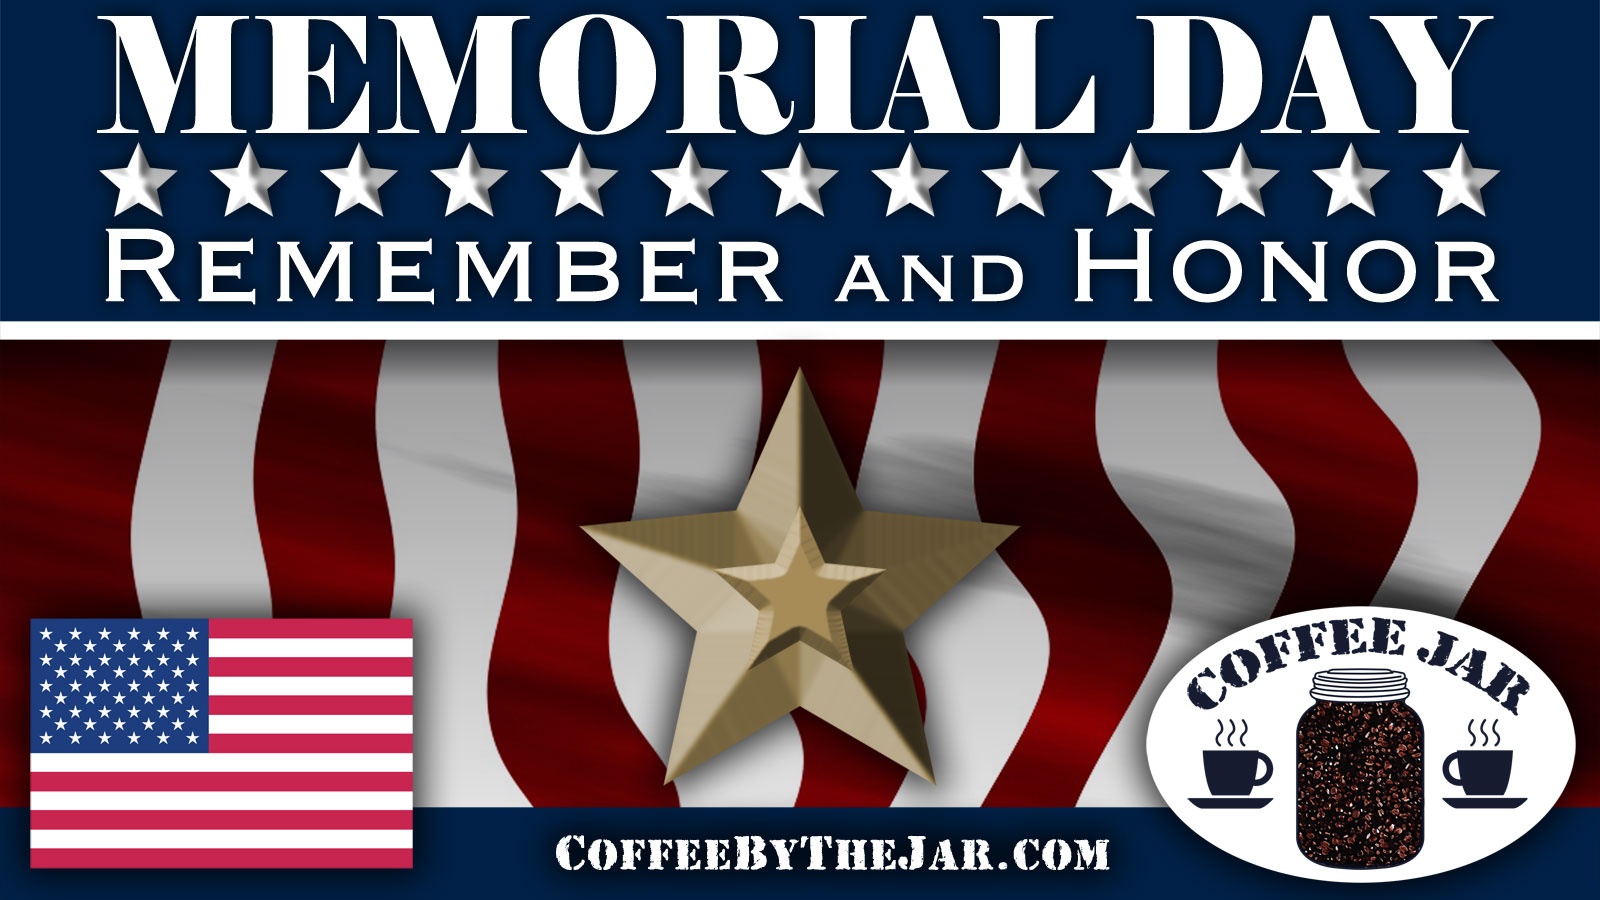 Coffee-Jar-Memorial-Day-wallpaper01-1600x900